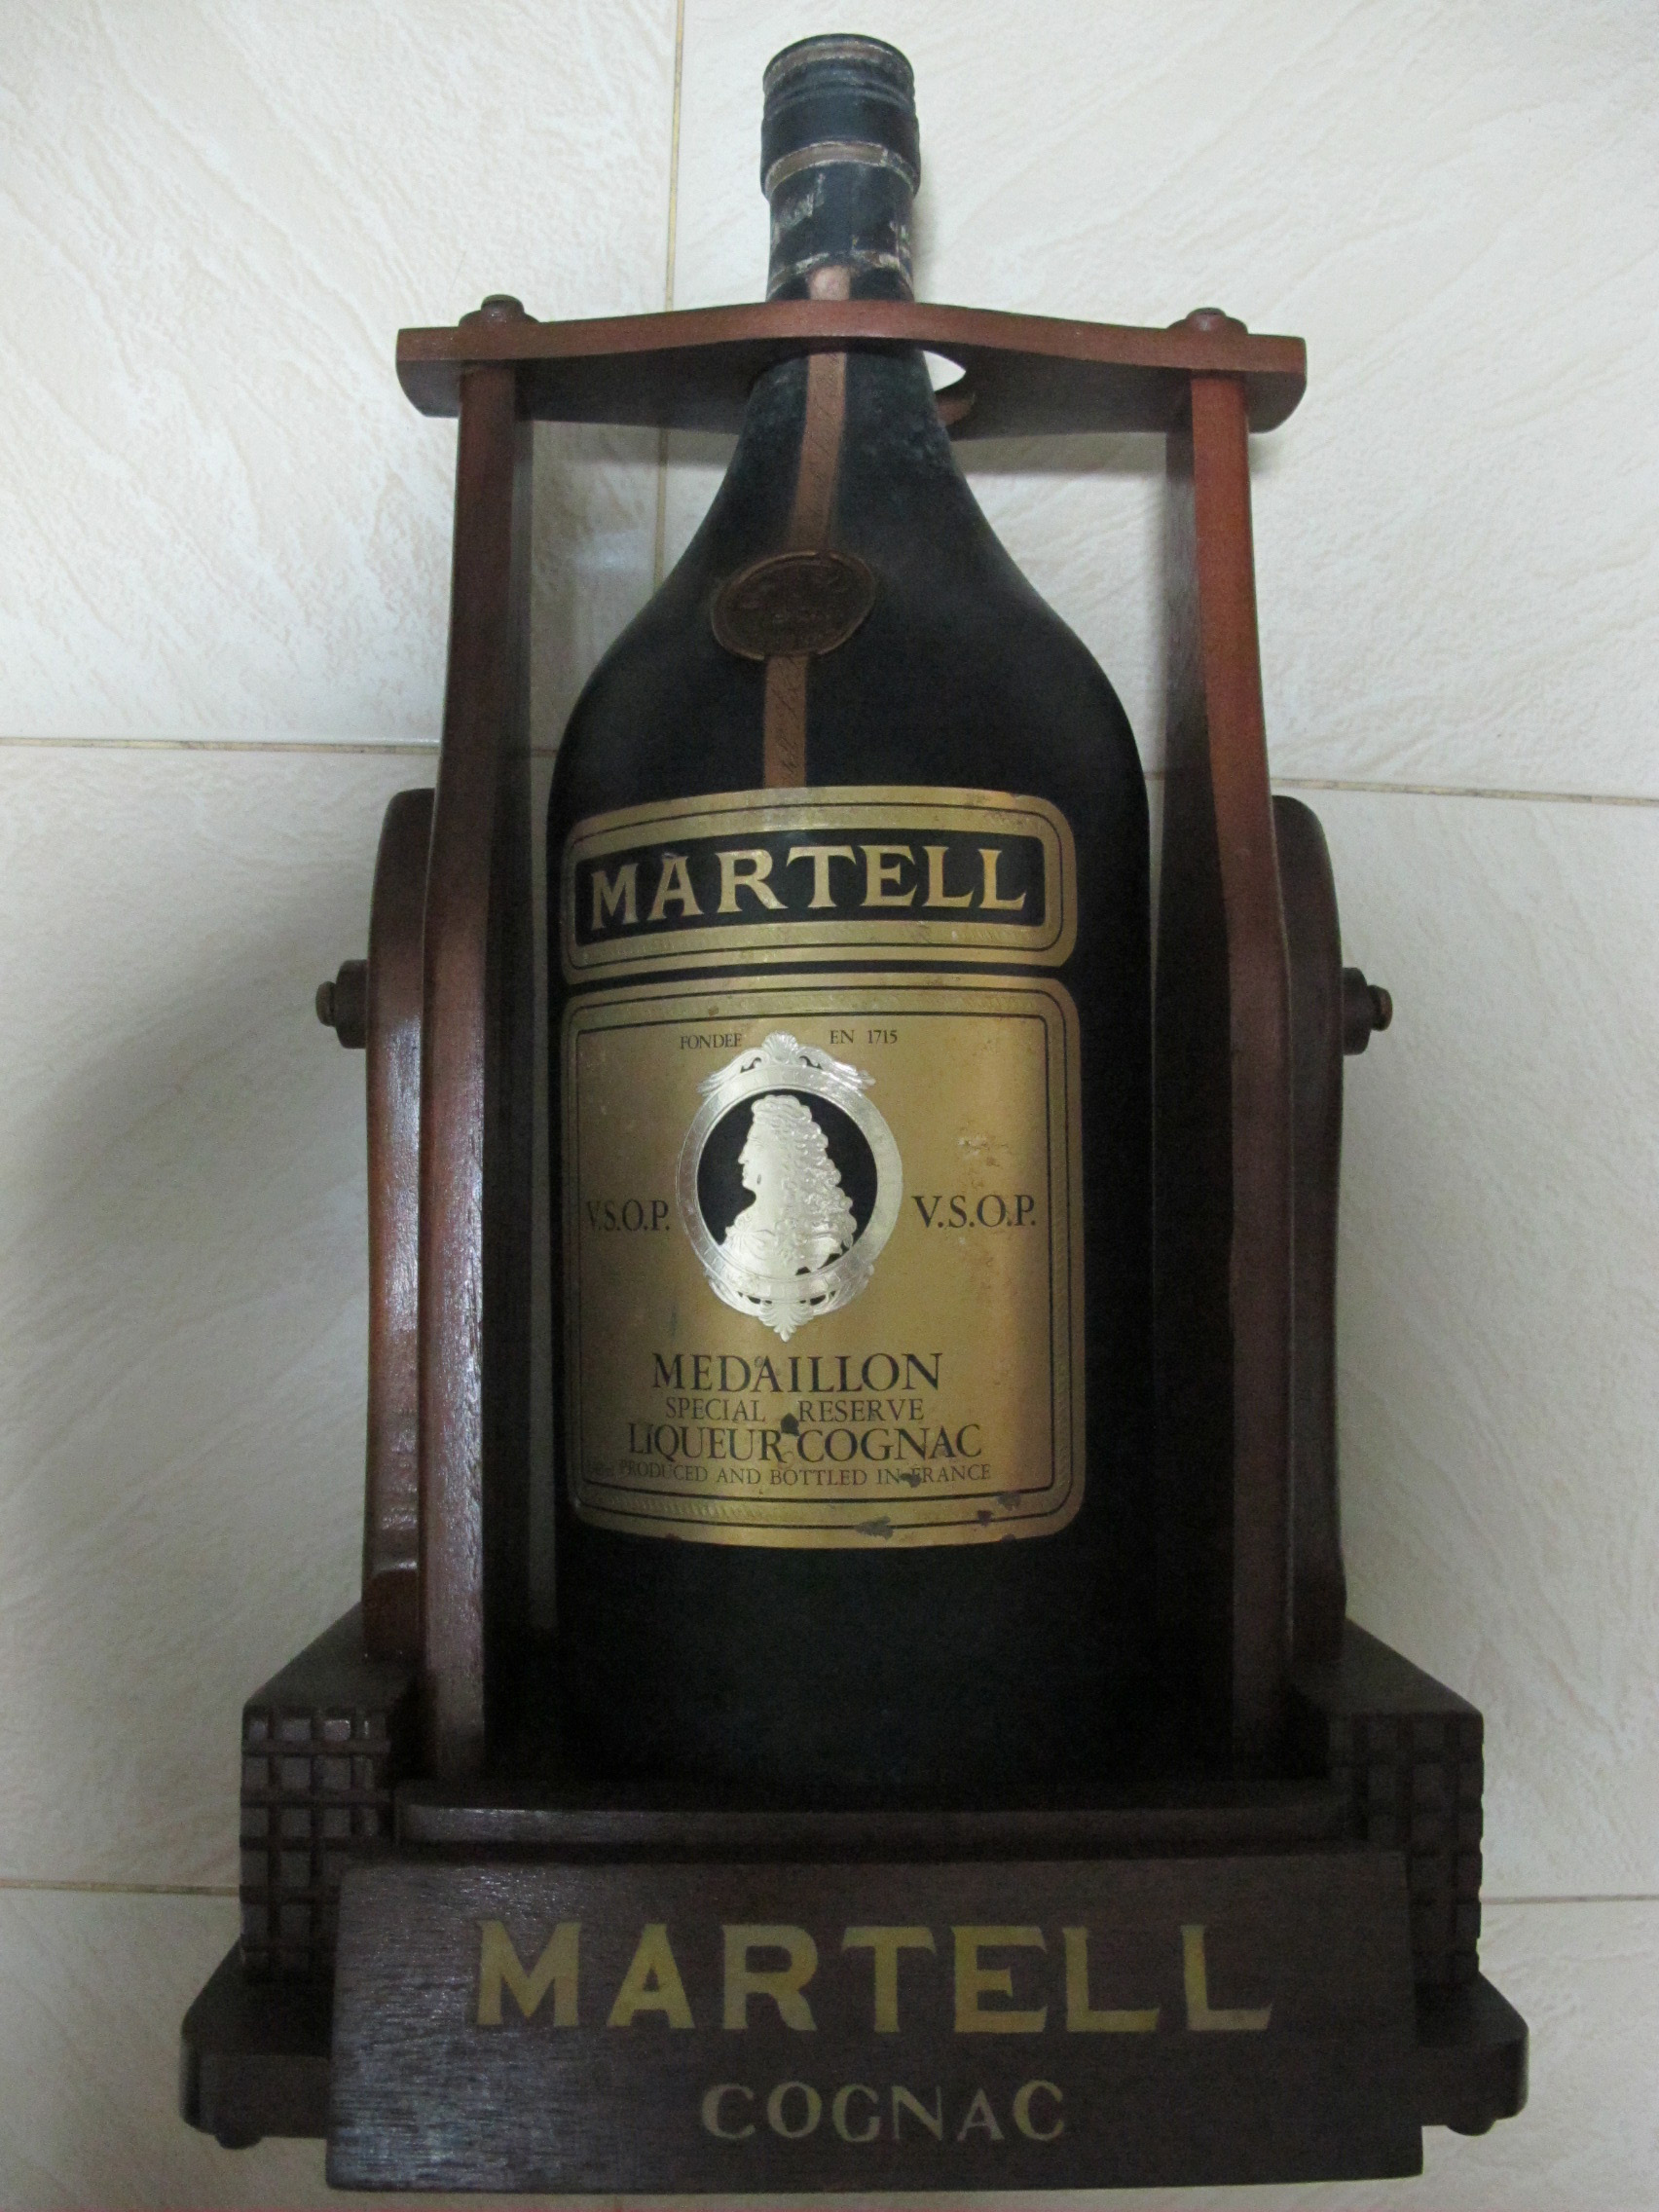 Magnum Martell Vsop Medaillon Liqueur Cognac Submitted To